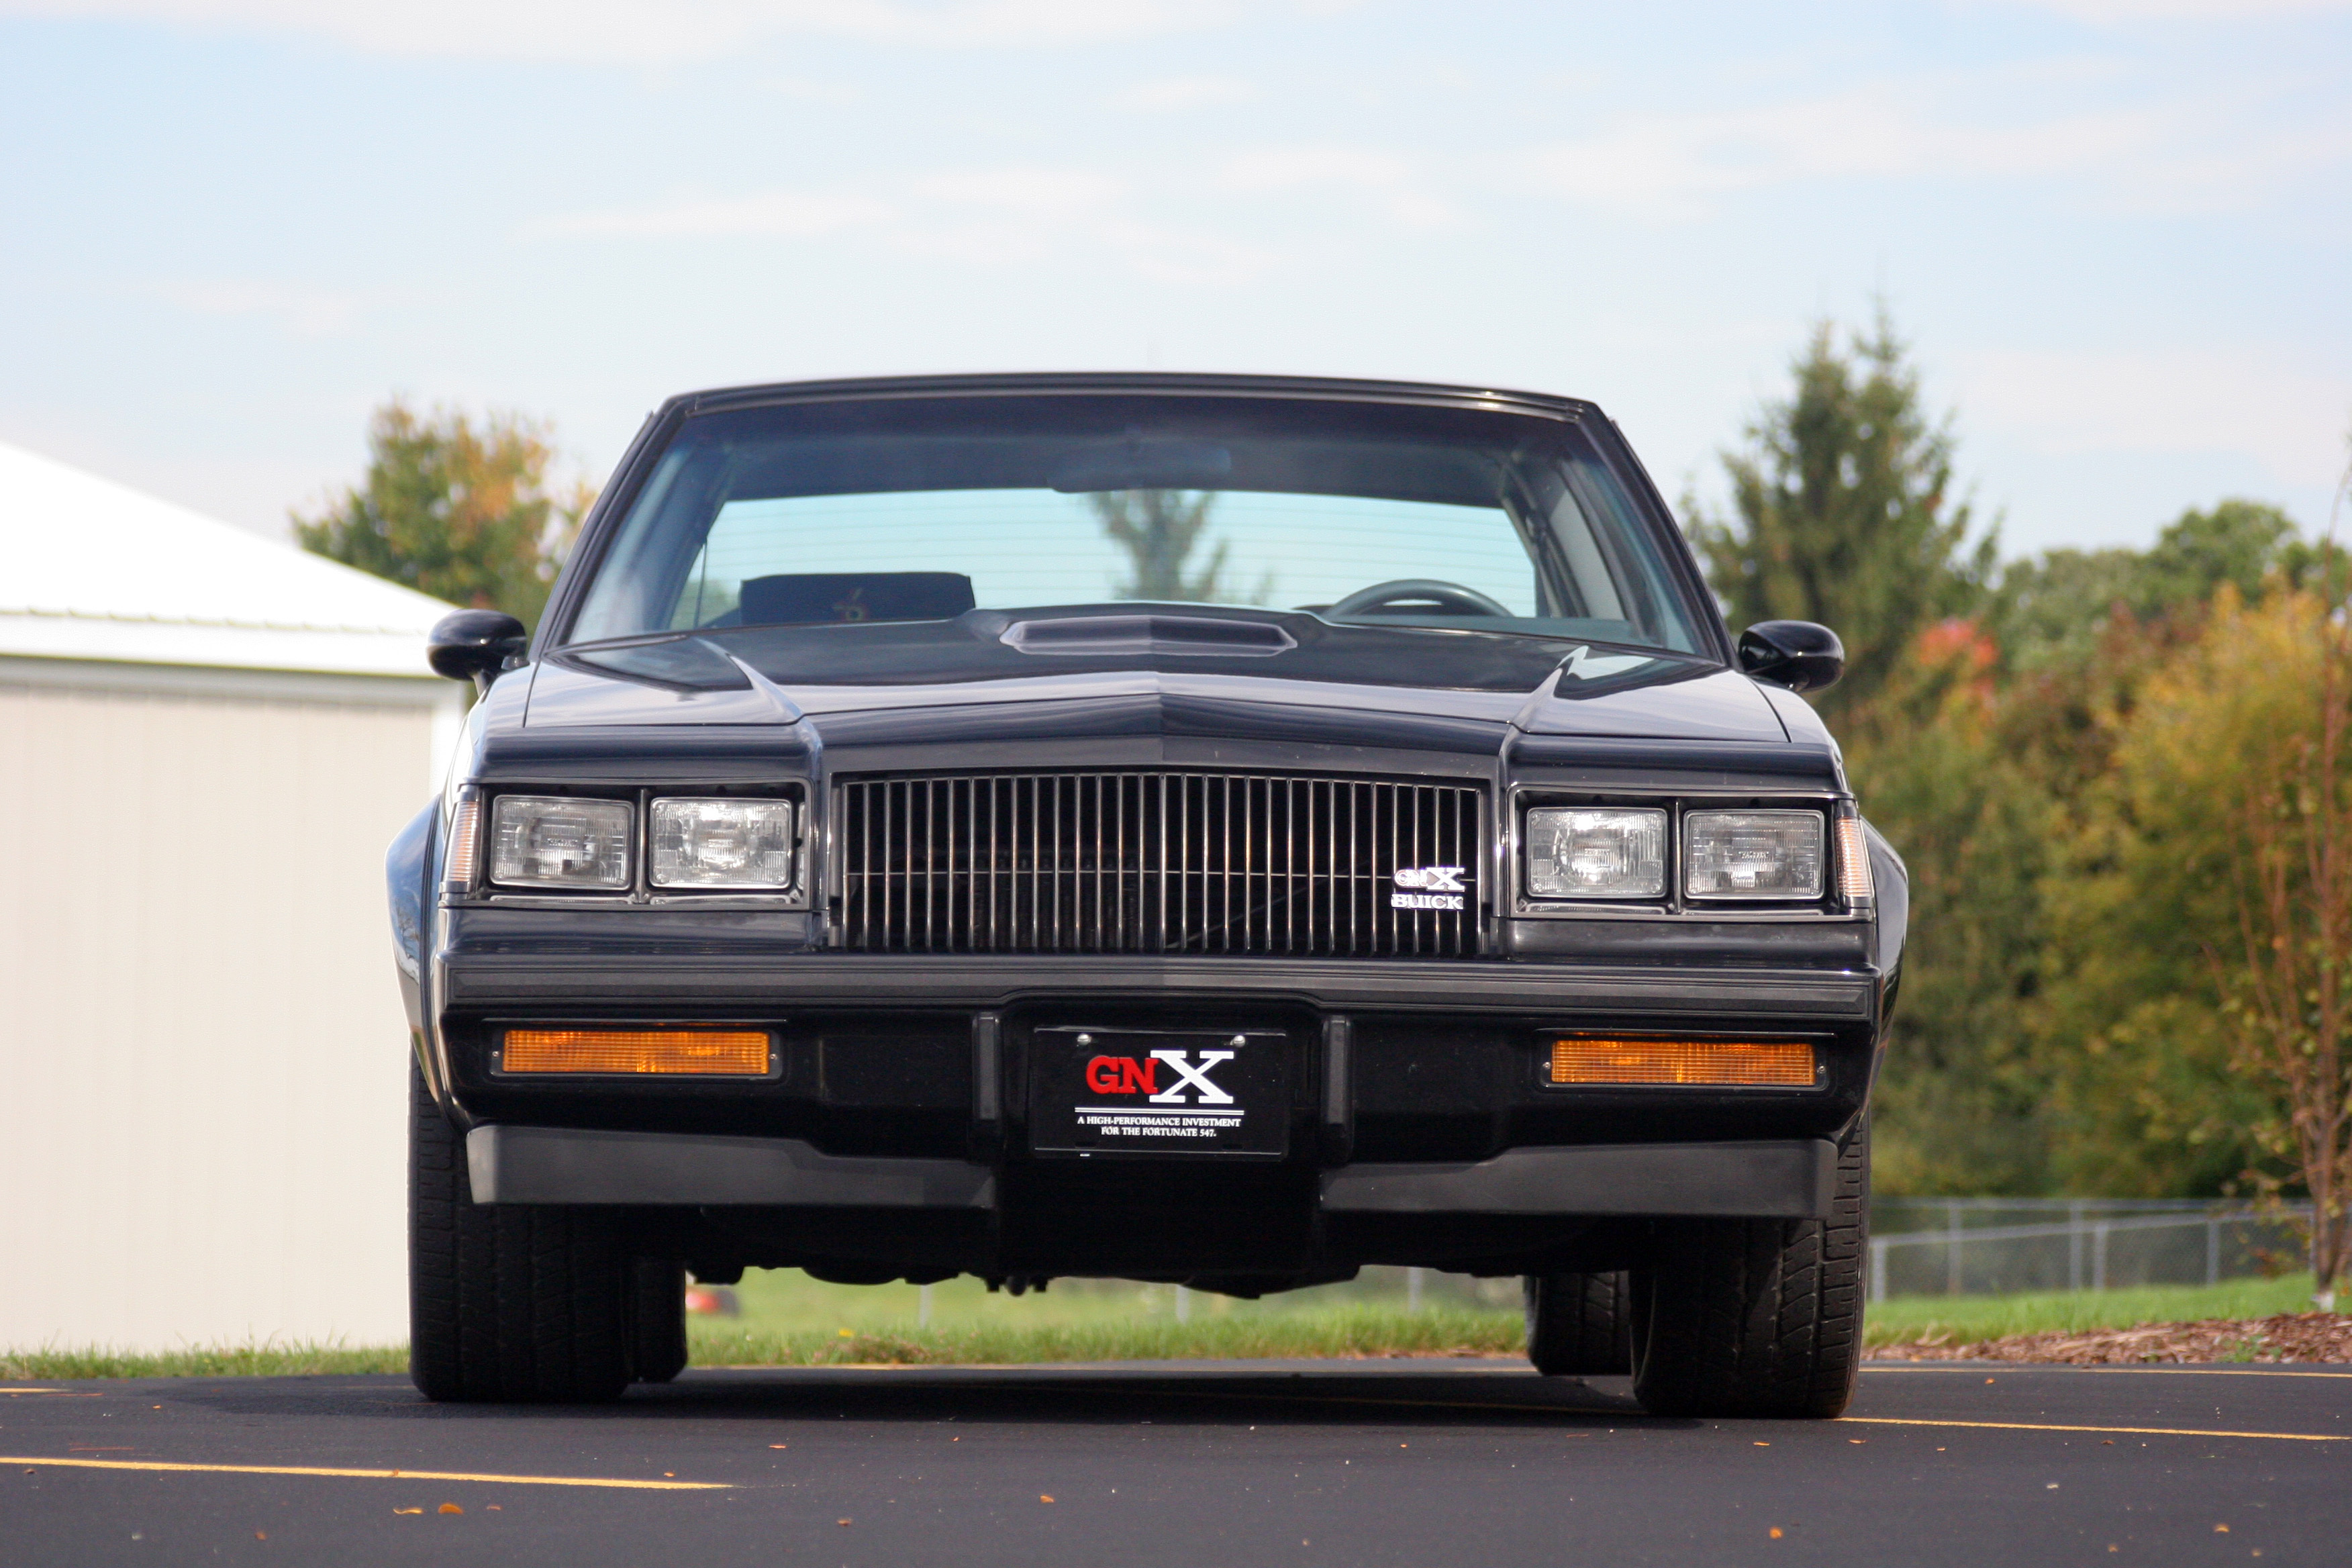 1987 Buick Gnx Wallpaper For Iphone